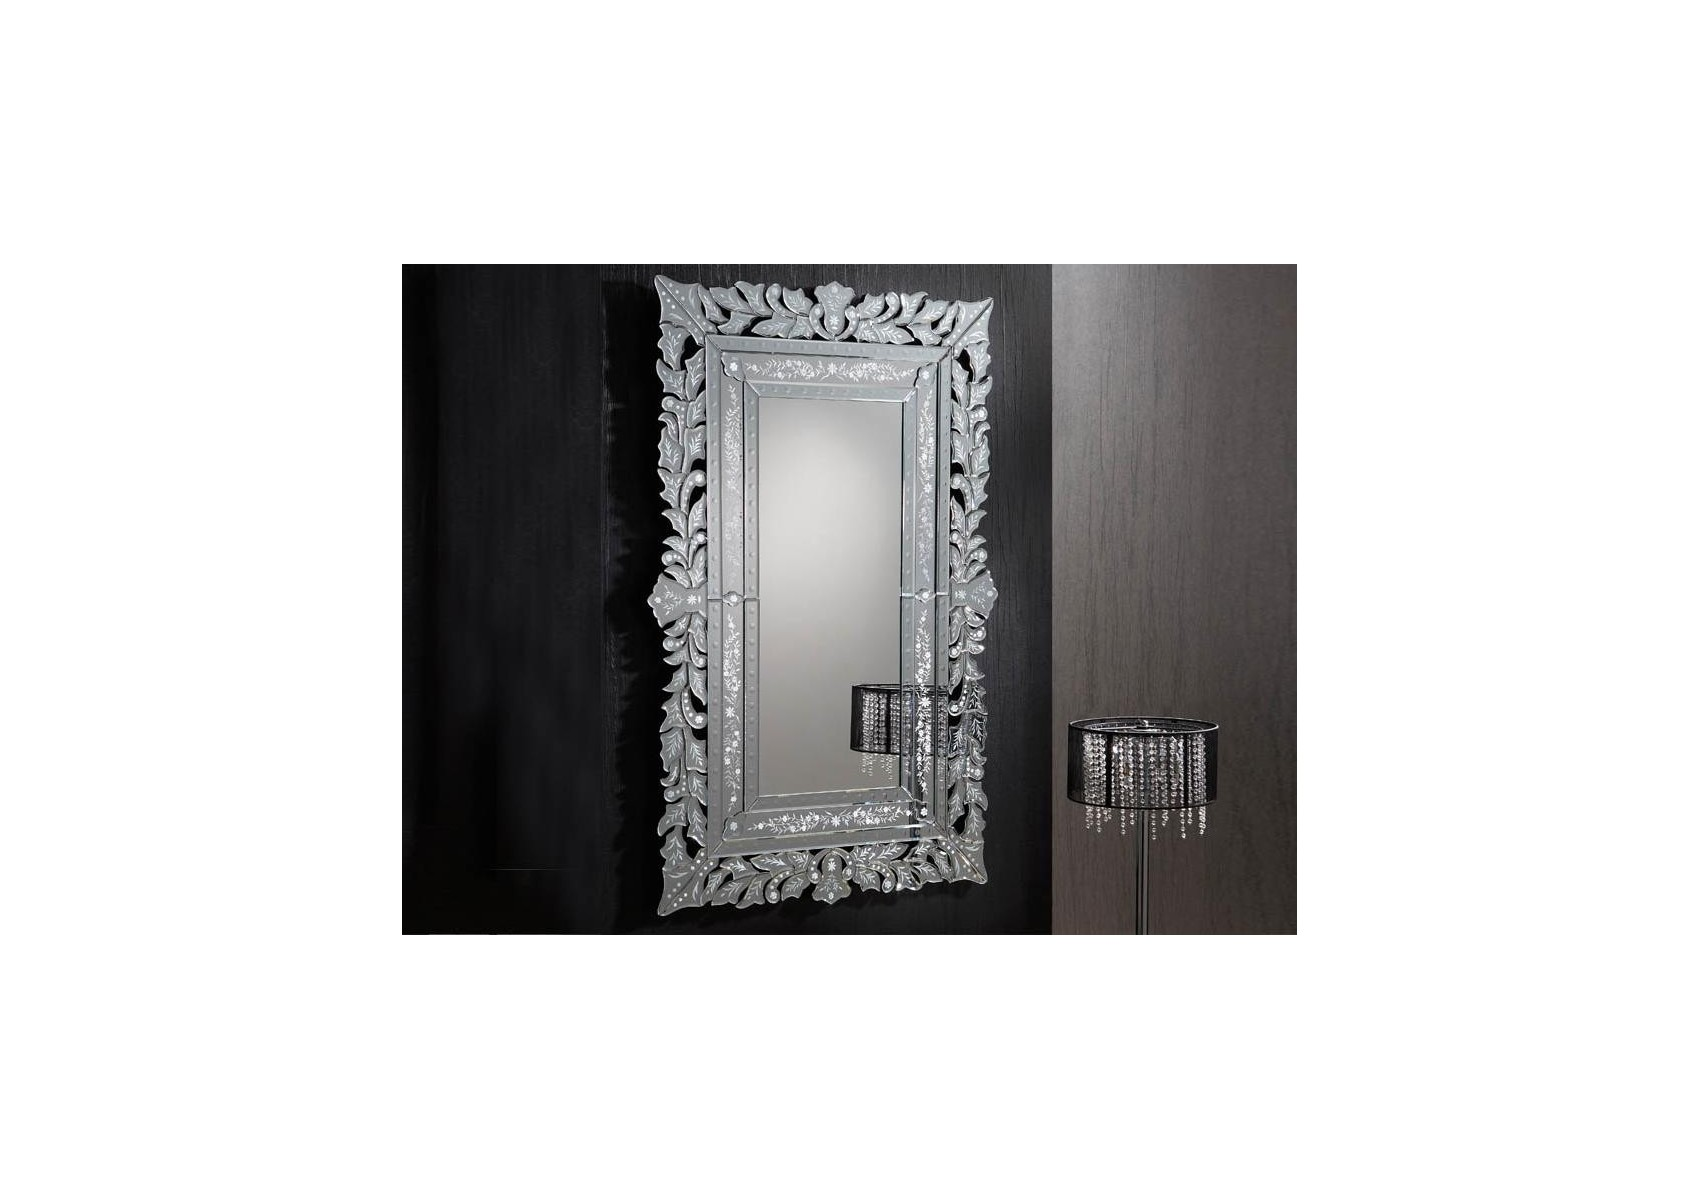 miroir original design cleopatra petit deco schuller. Black Bedroom Furniture Sets. Home Design Ideas